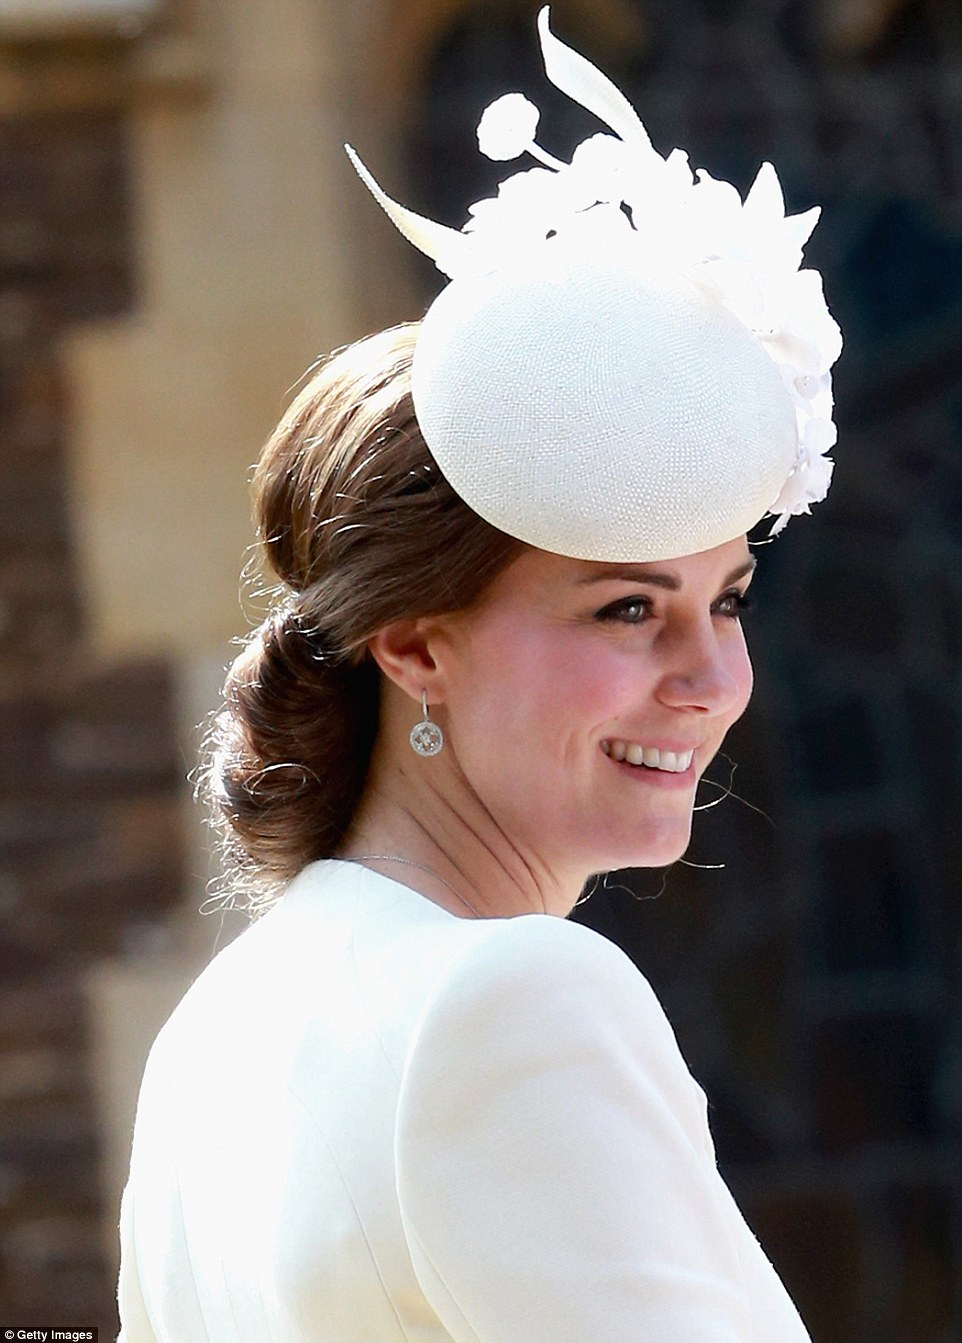 Kate Middleton wears Alexander McQueen with a Jane Taylor hat at daughter's christening